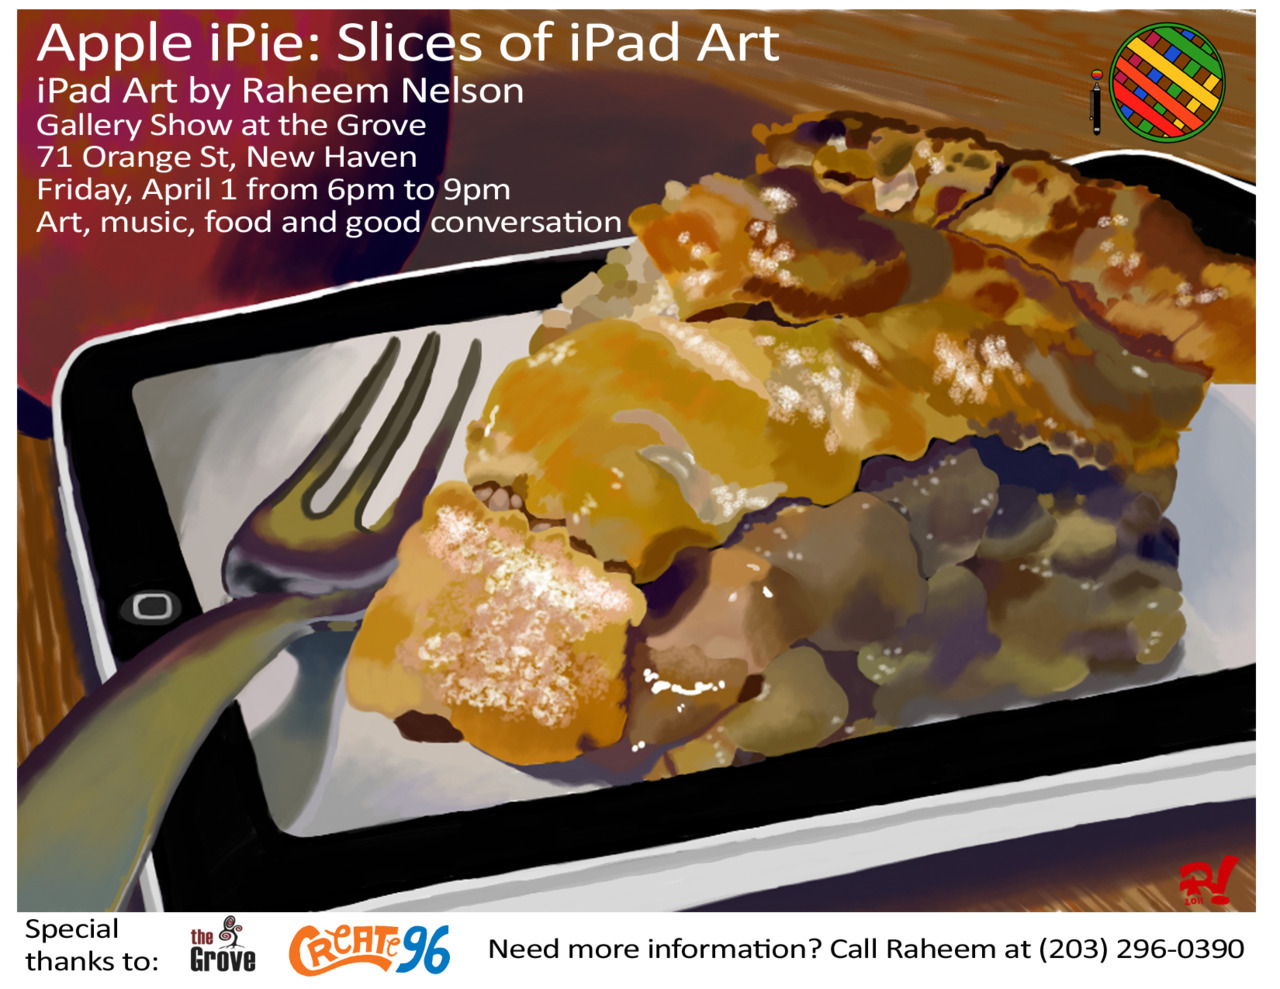 Apple iPie: Slices of iPad Art Gallery | by @EyeoftheSunGod 96-7 On April 1st (It's no joke.) I will be having an art show in New Haven, CT to showcase my iPad artwork. The show is called Apple iPie: Slices of iPad Art. It will be through Create 96 and The Grove. I just want to say I am very grateful Jeff and Mason not only have an interest in my work but wish to help me succeed. I  absolutely love what Create 96 and The Grove stand for. The show will  be from 6pm to 9pm. If you're in the area come out and enjoy yourself. There  will be food, music, art and good conversation. ————————————————— (Submit your own creations here)